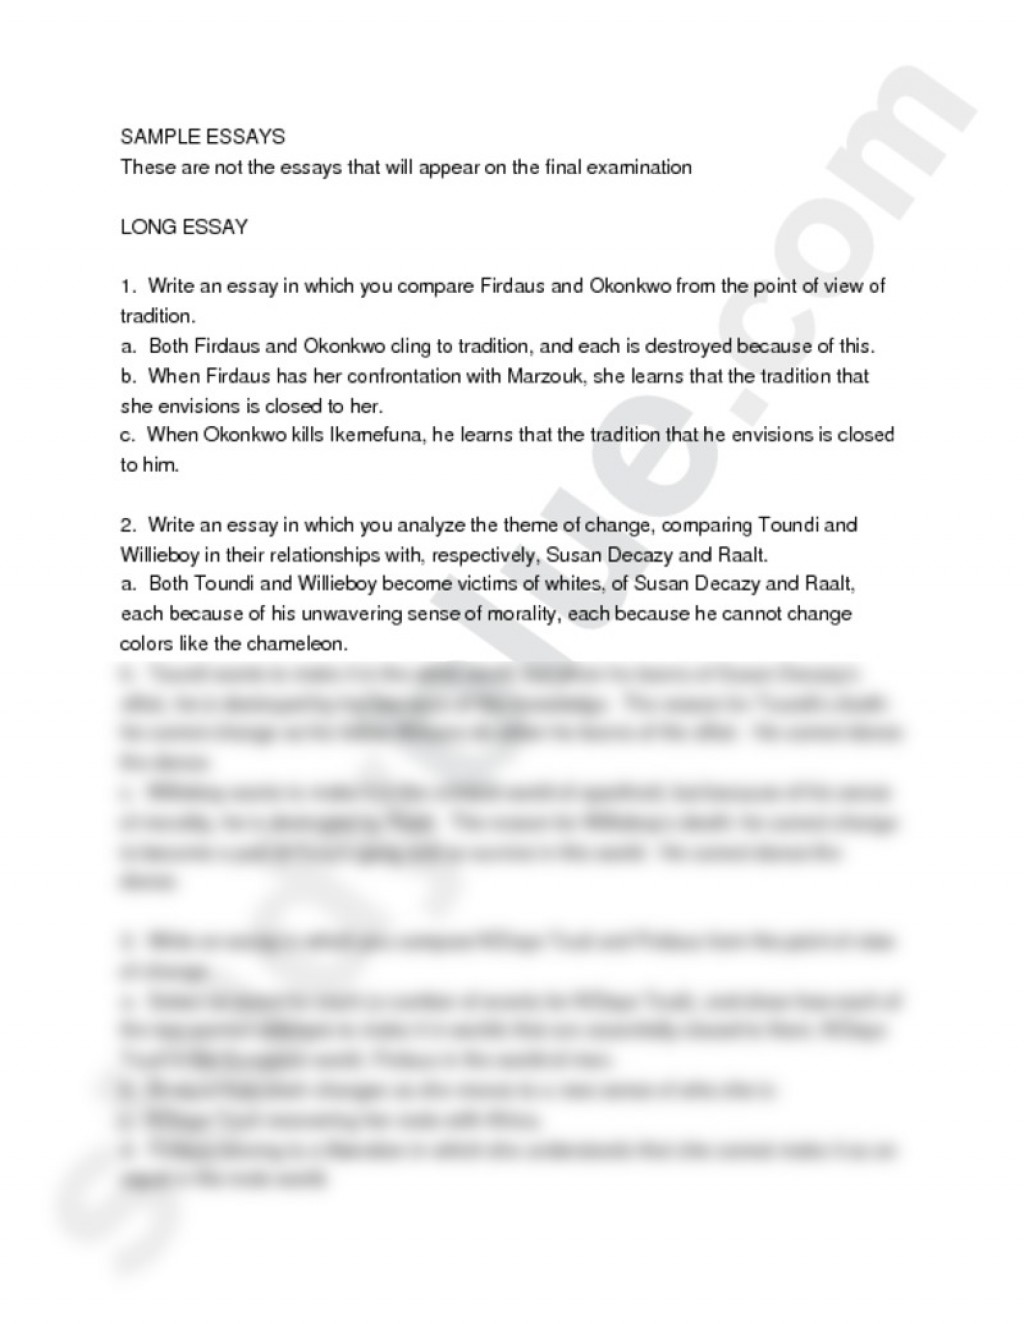 002 University Of Washington Essay Example Preview Luxury Uw Unique Application Examples Prompts Bothell Prompt Large